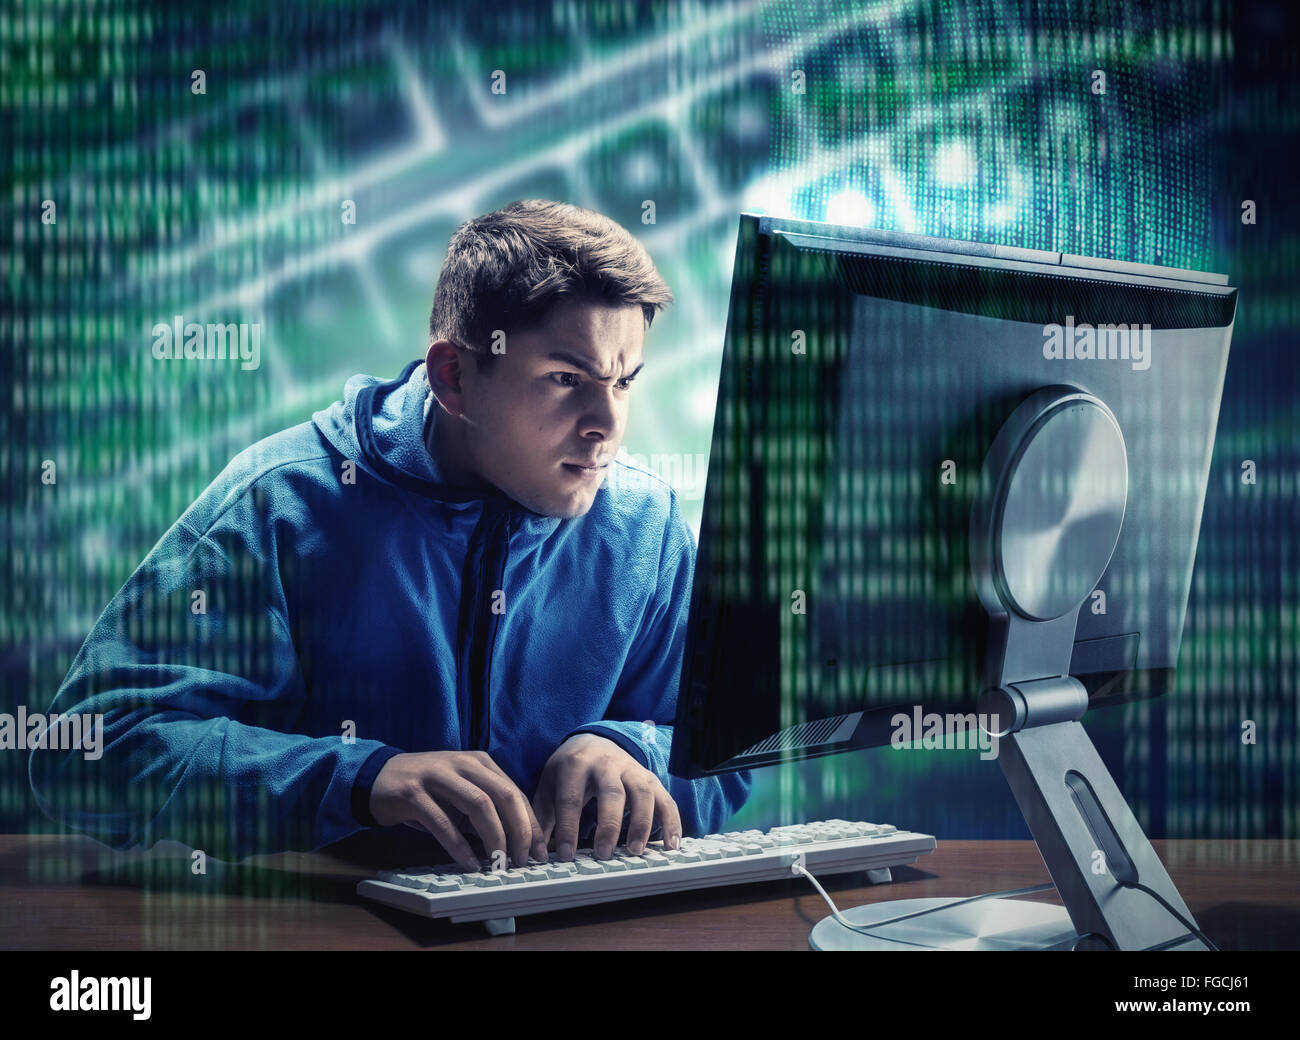 Page 2 Hacker High Resolution Stock Photography And Images Alamy